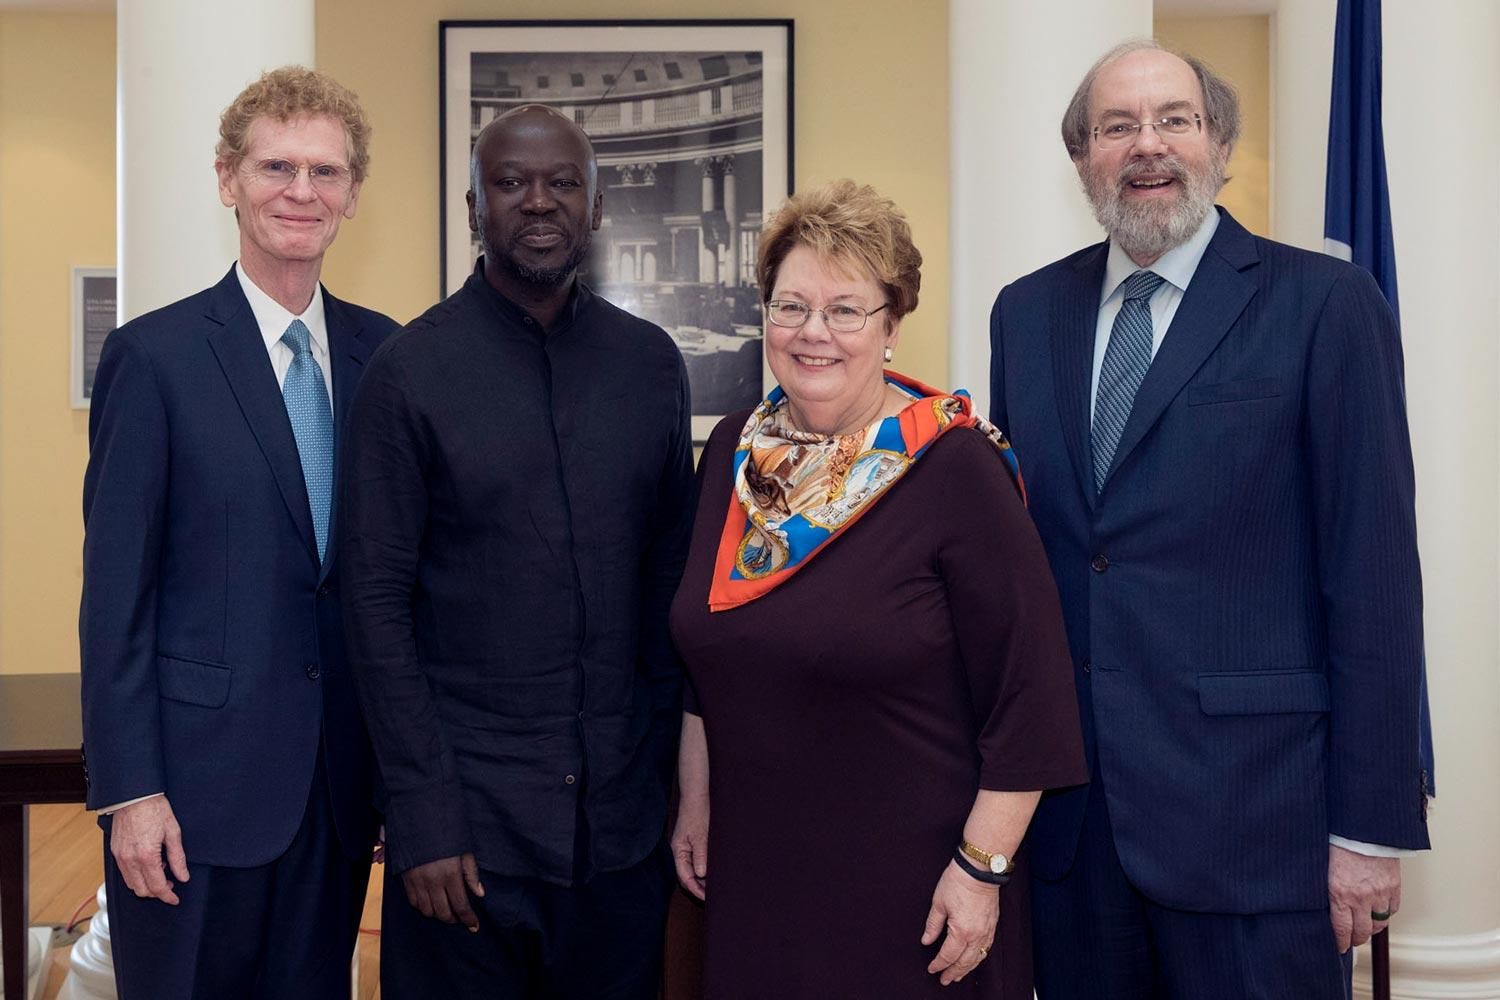 From left, Citizen Leadership medalist Cary Fowler, Architecture medalist Sir David Adjaye, UVA President Teresa A. Sullivan and Law medalist Judge Frank Easterbrook.